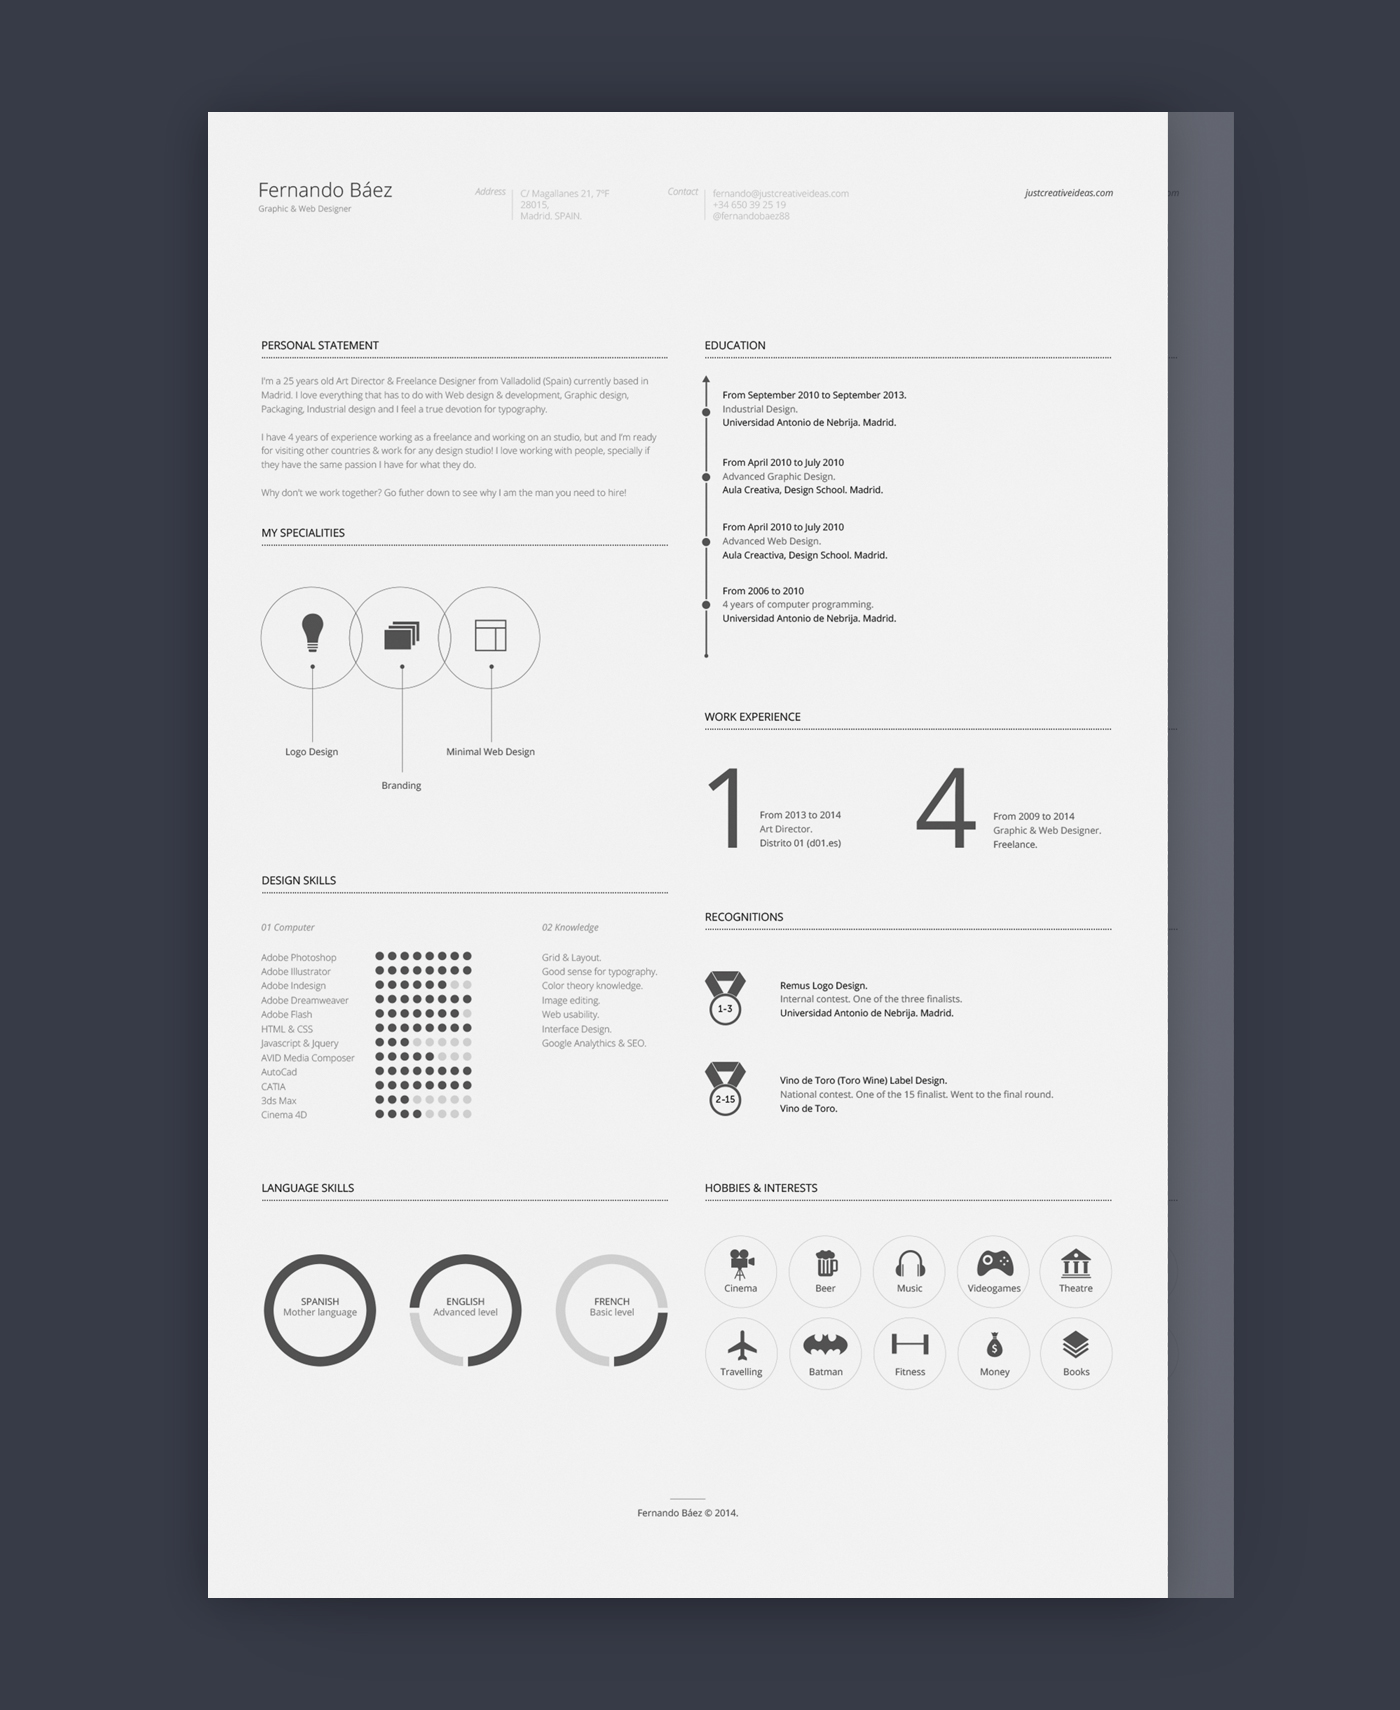 FF - Awesome free resume template with icons